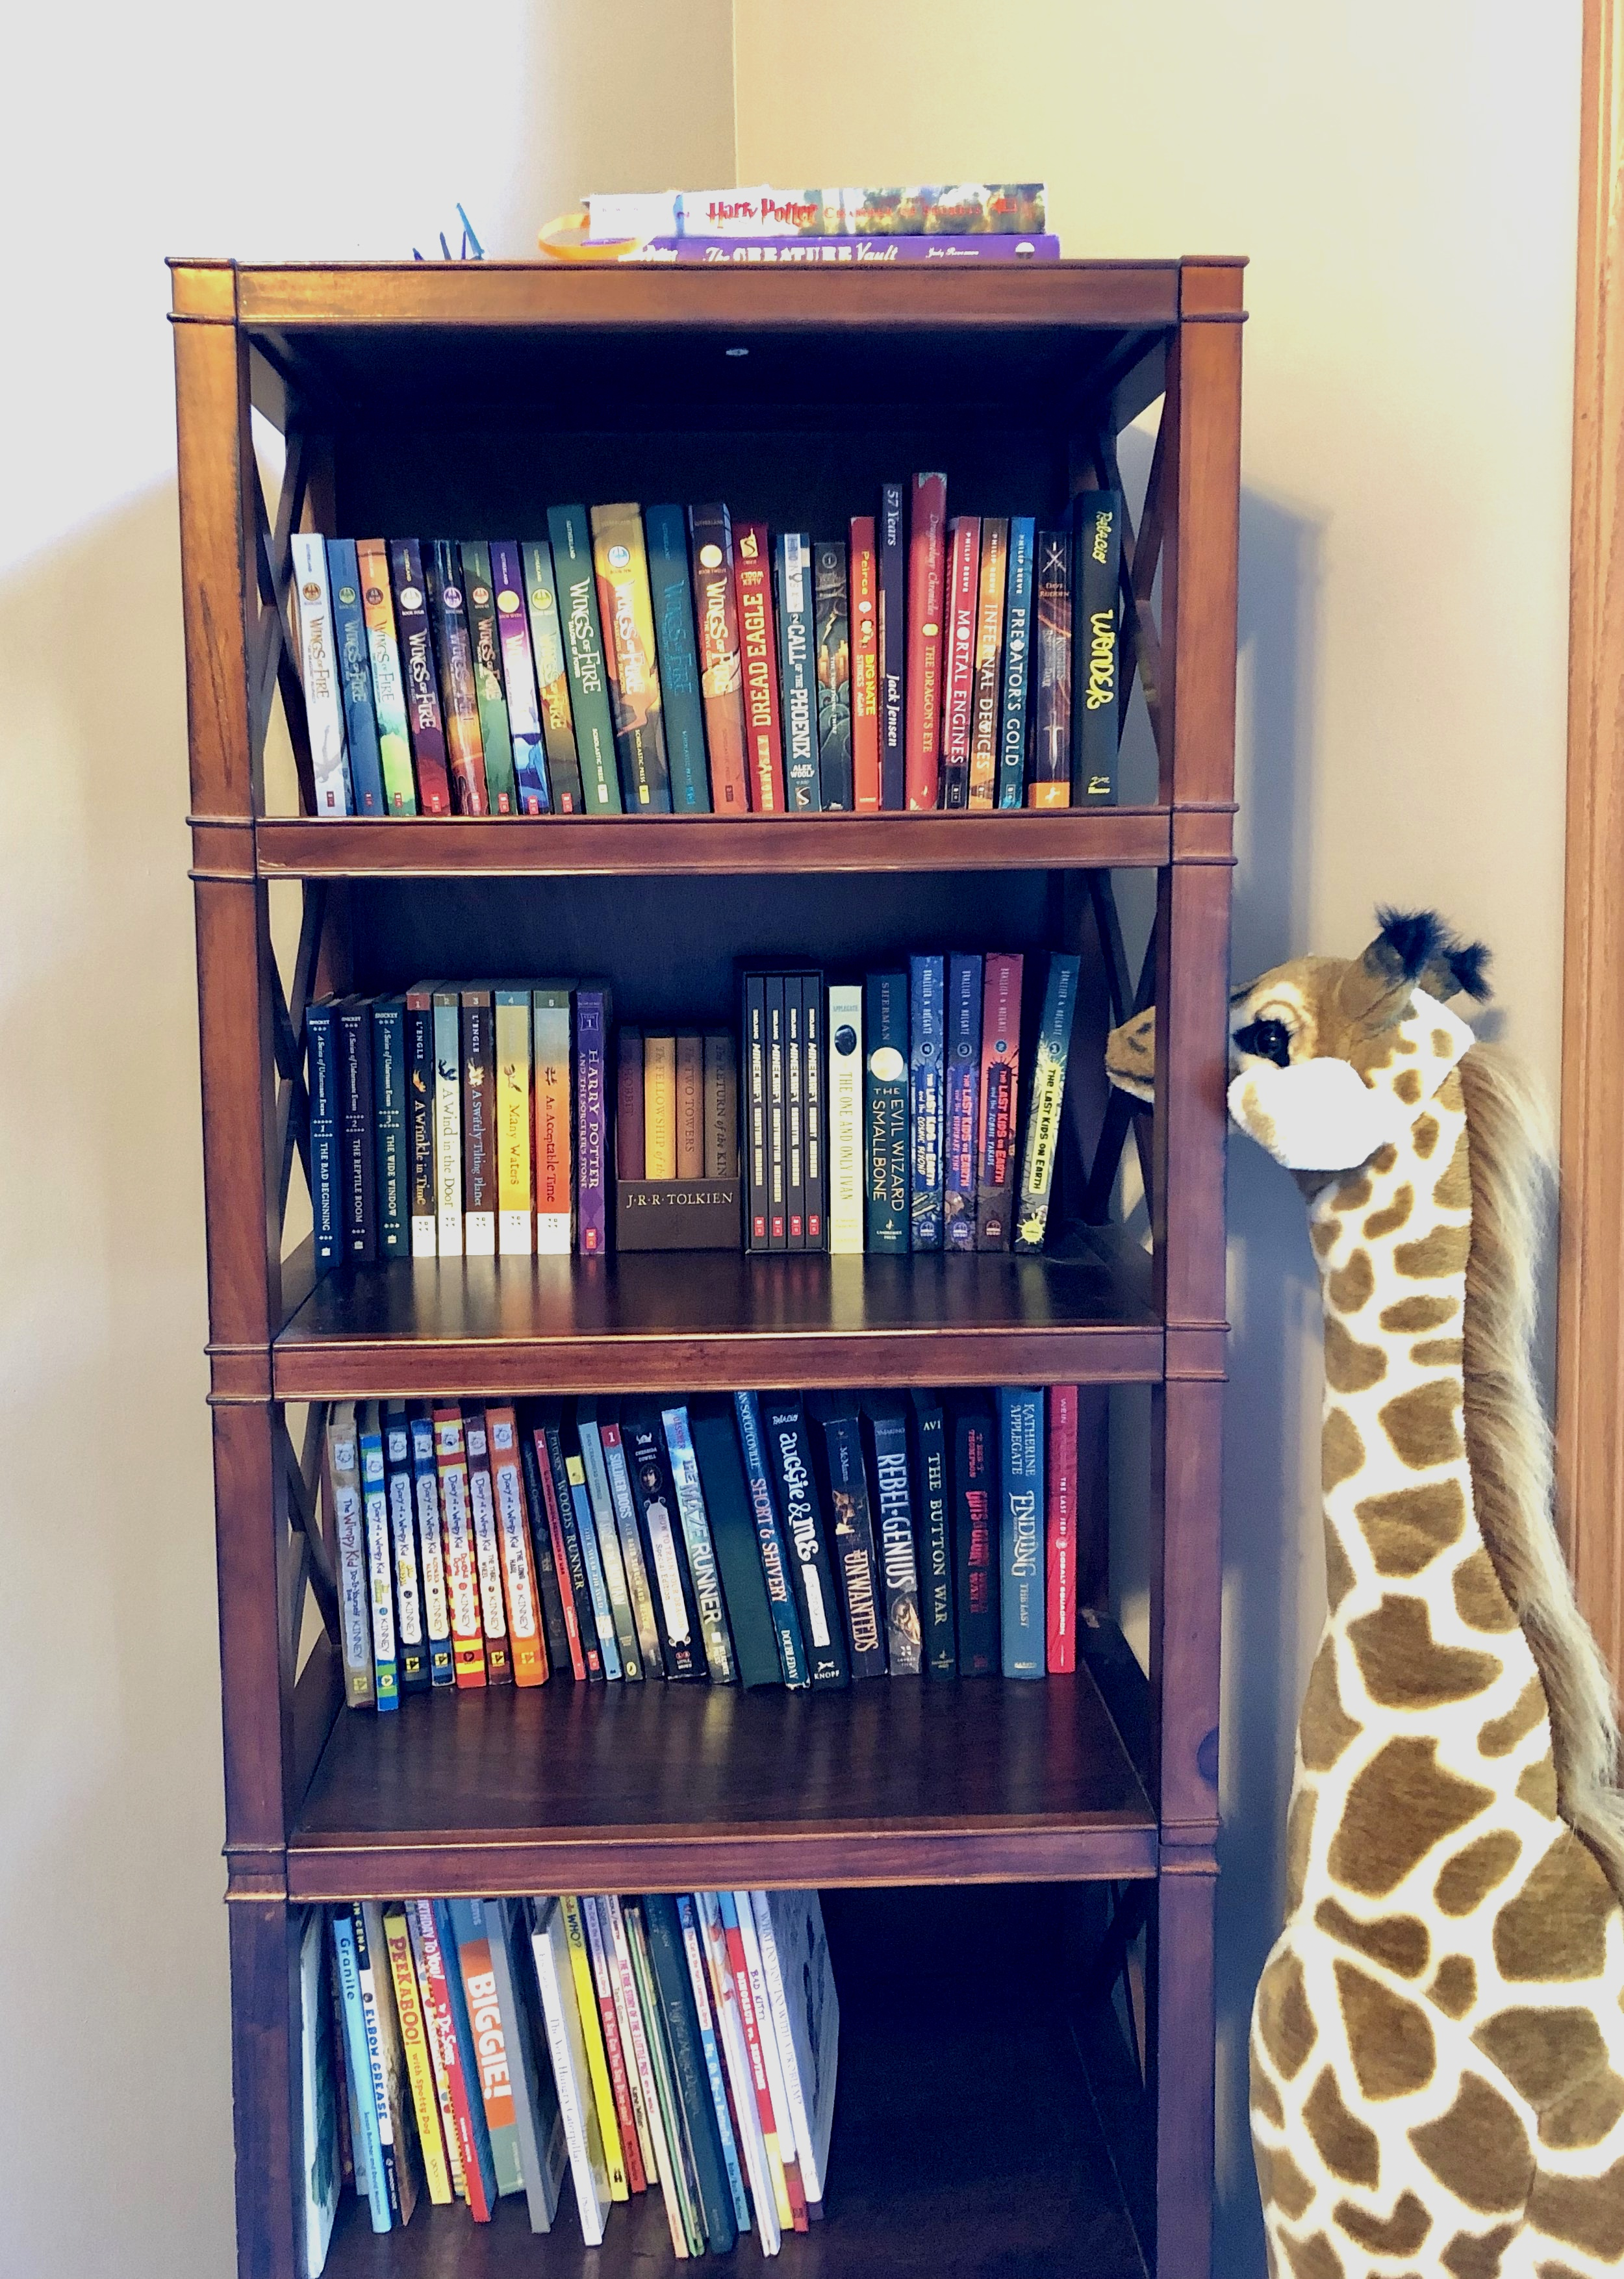 One of two tall bookcases used for overflow storybooks and chapter books. Bob the giraffe acting as resident librarian.